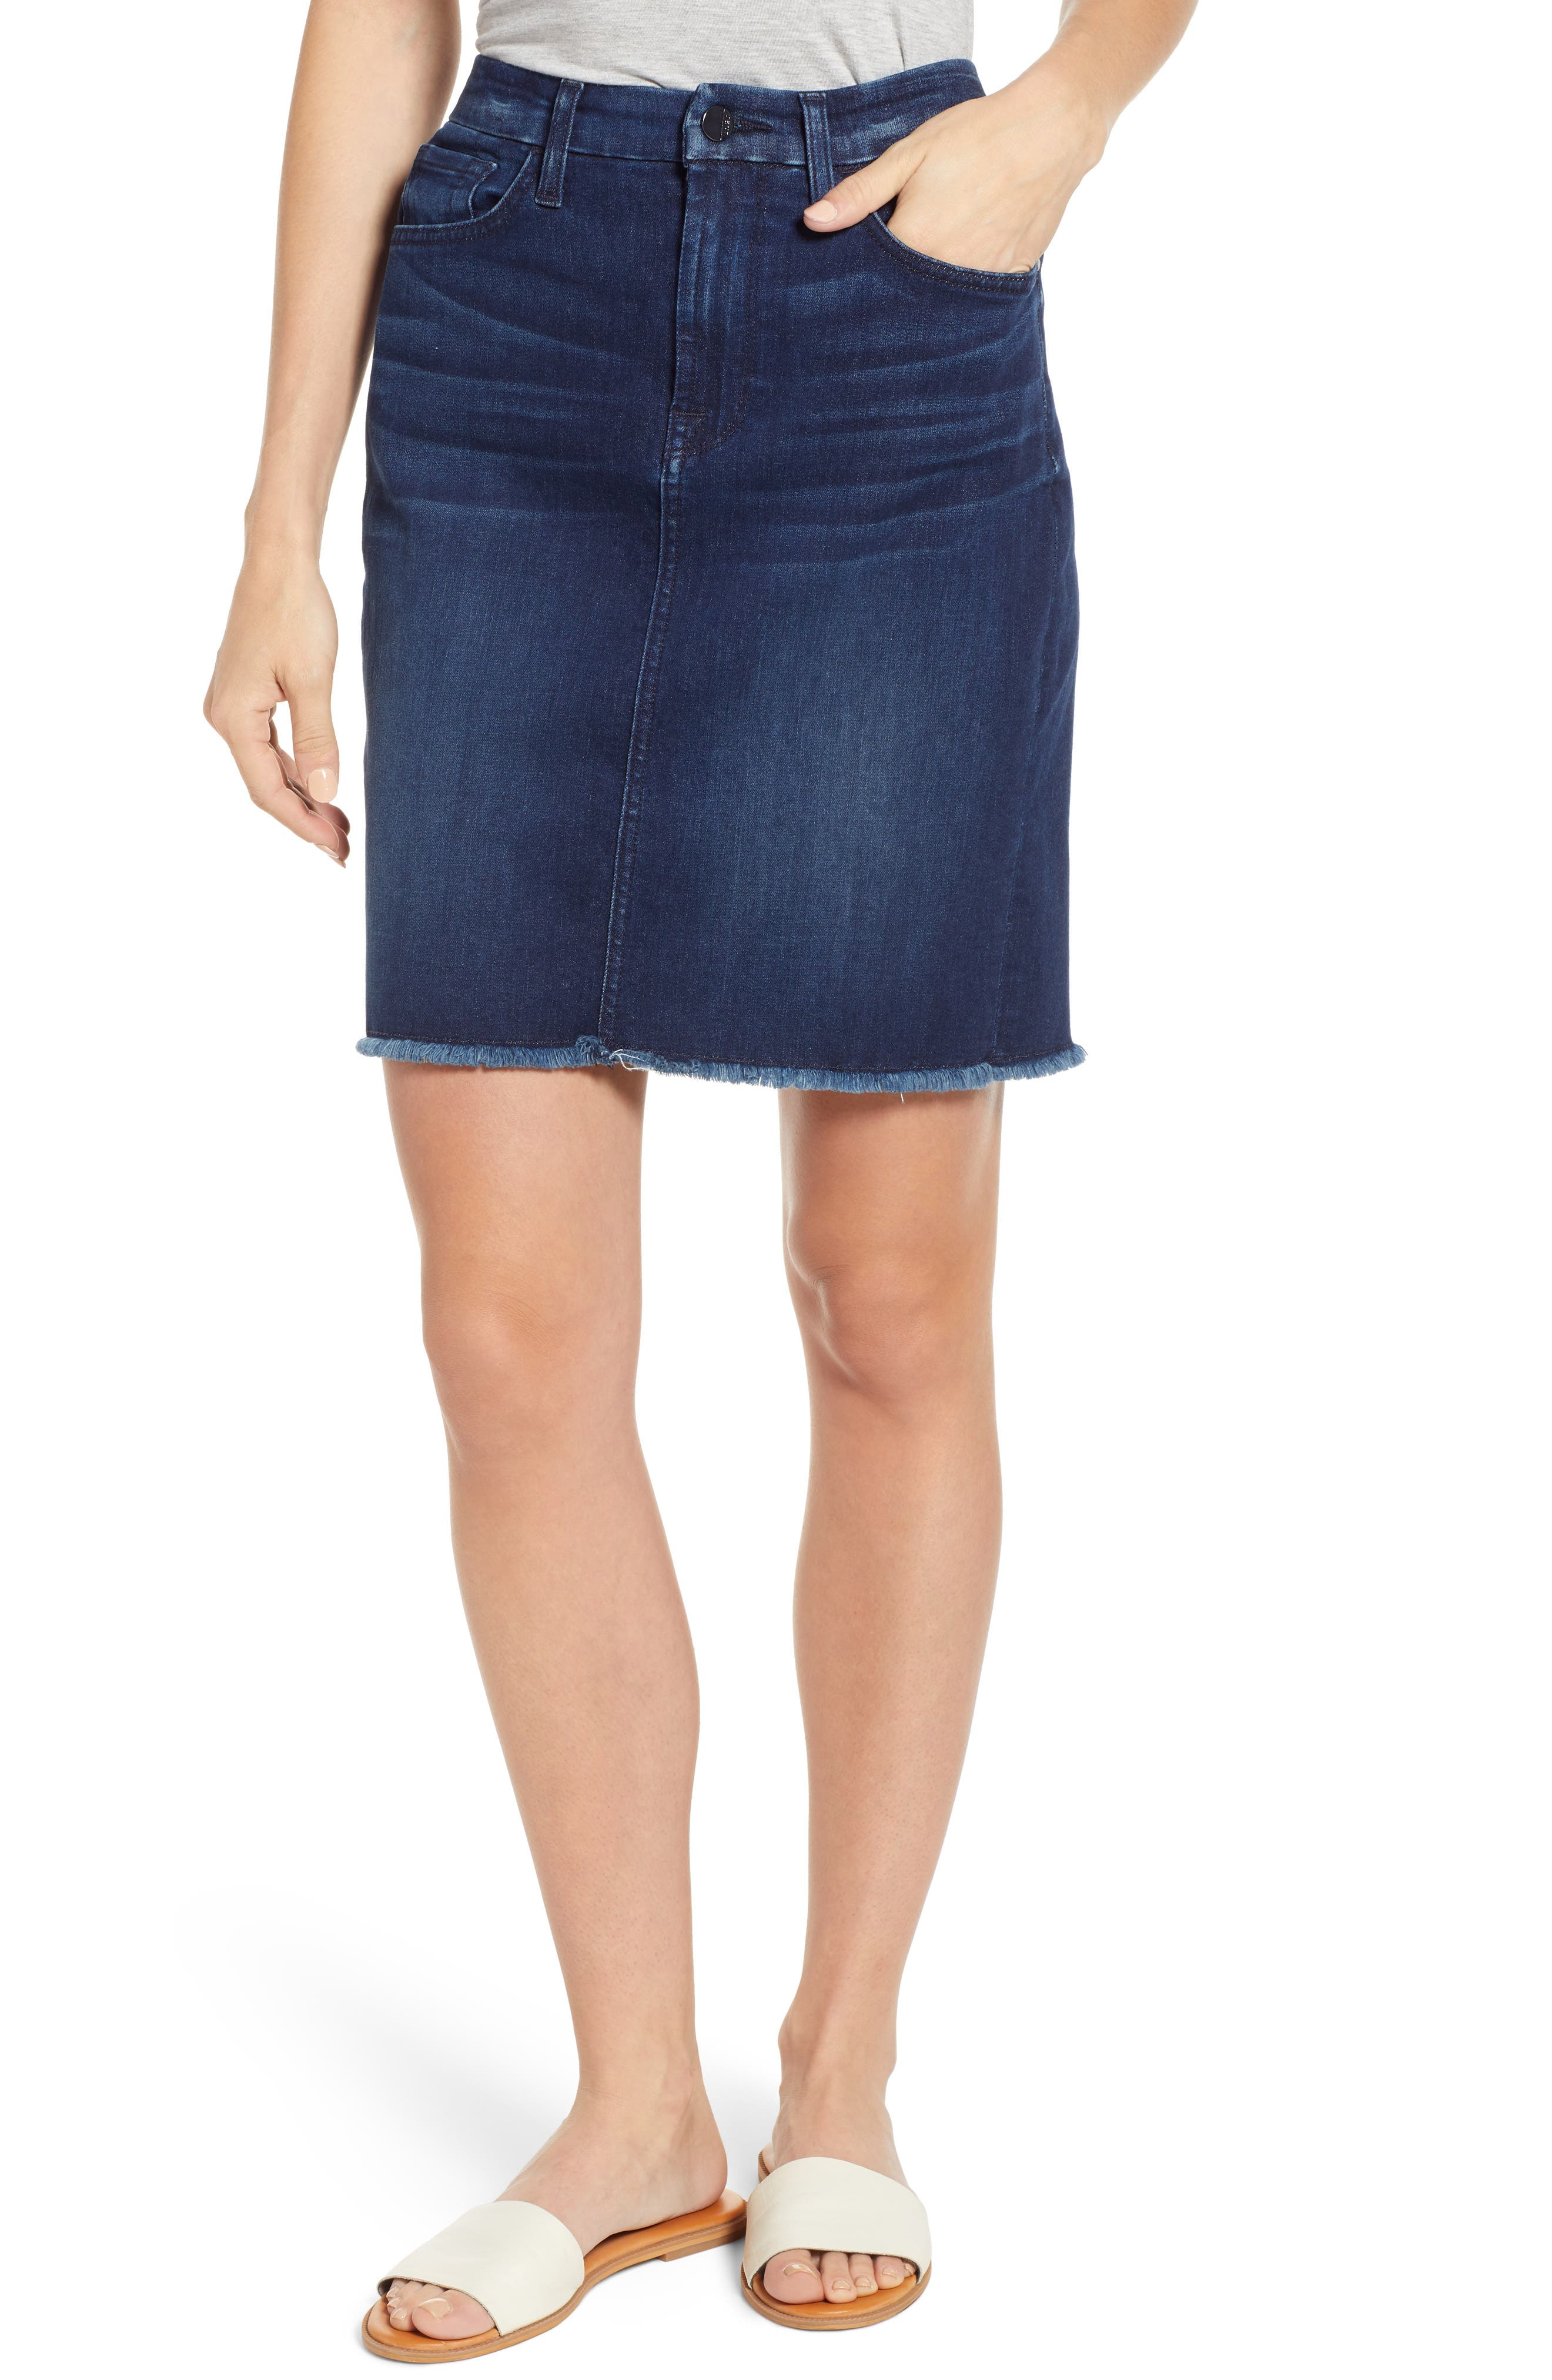 JEN7 BY 7 FOR ALL MANKIND Raw Hem Denim Pencil Skirt, Main, color, IMPERIAL INDIGO